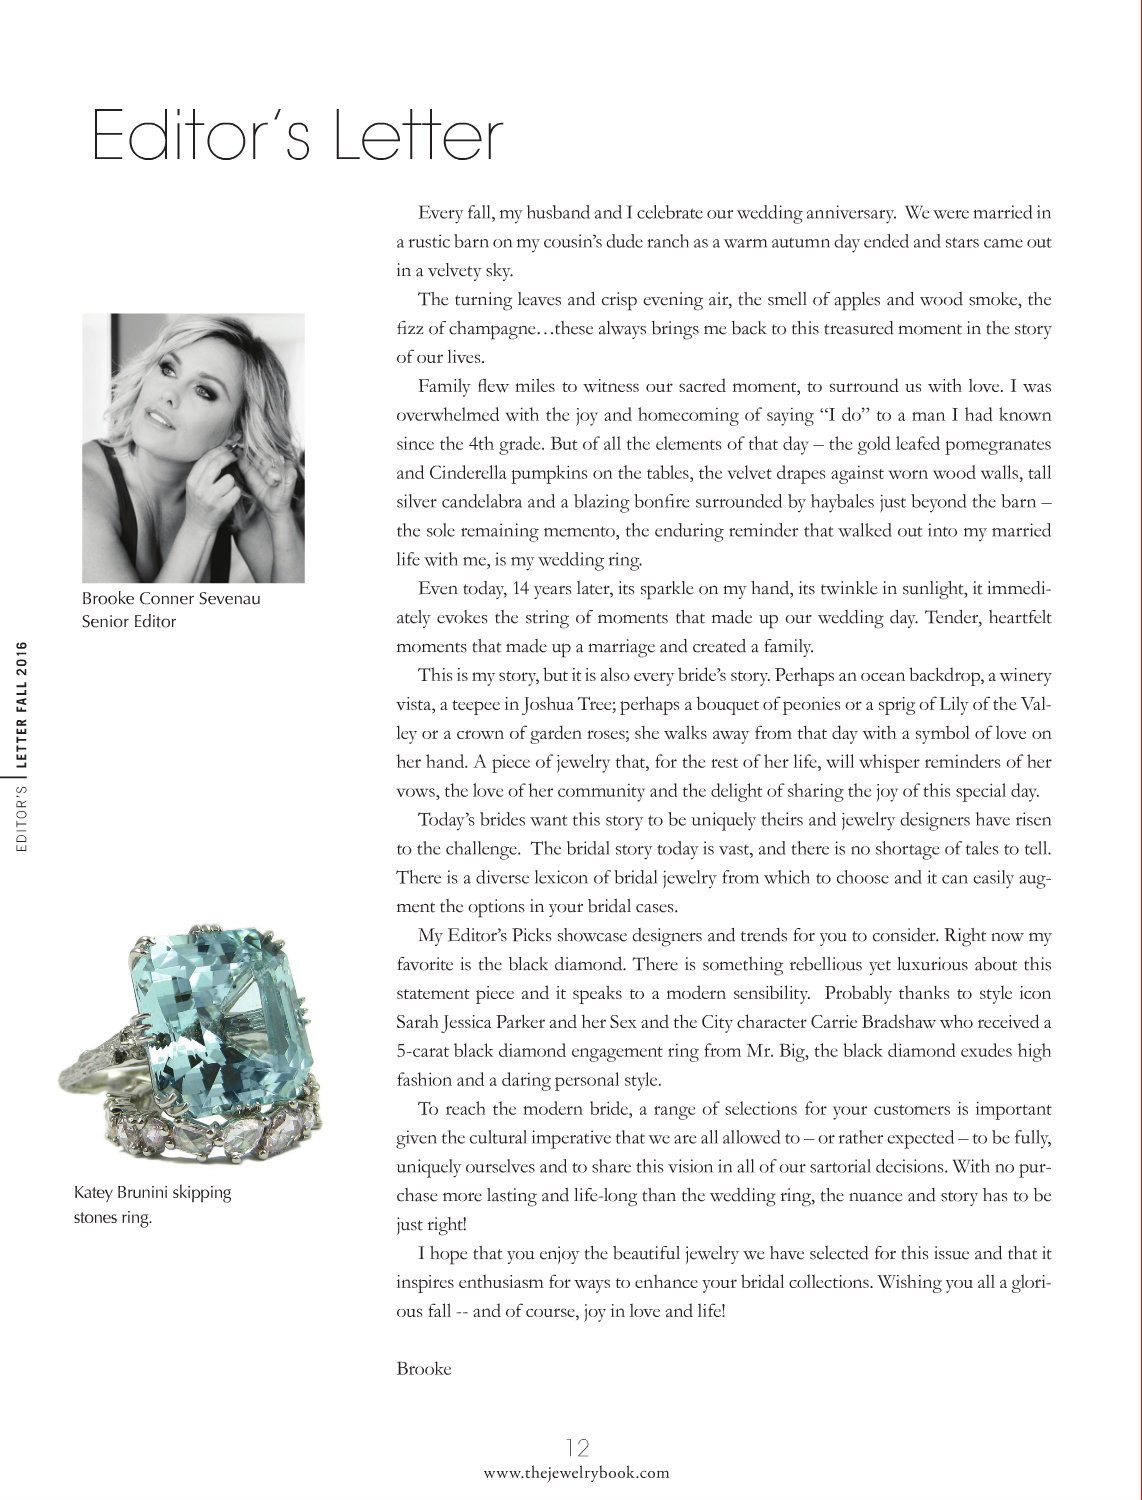 the-jewelry-book-editors-letter